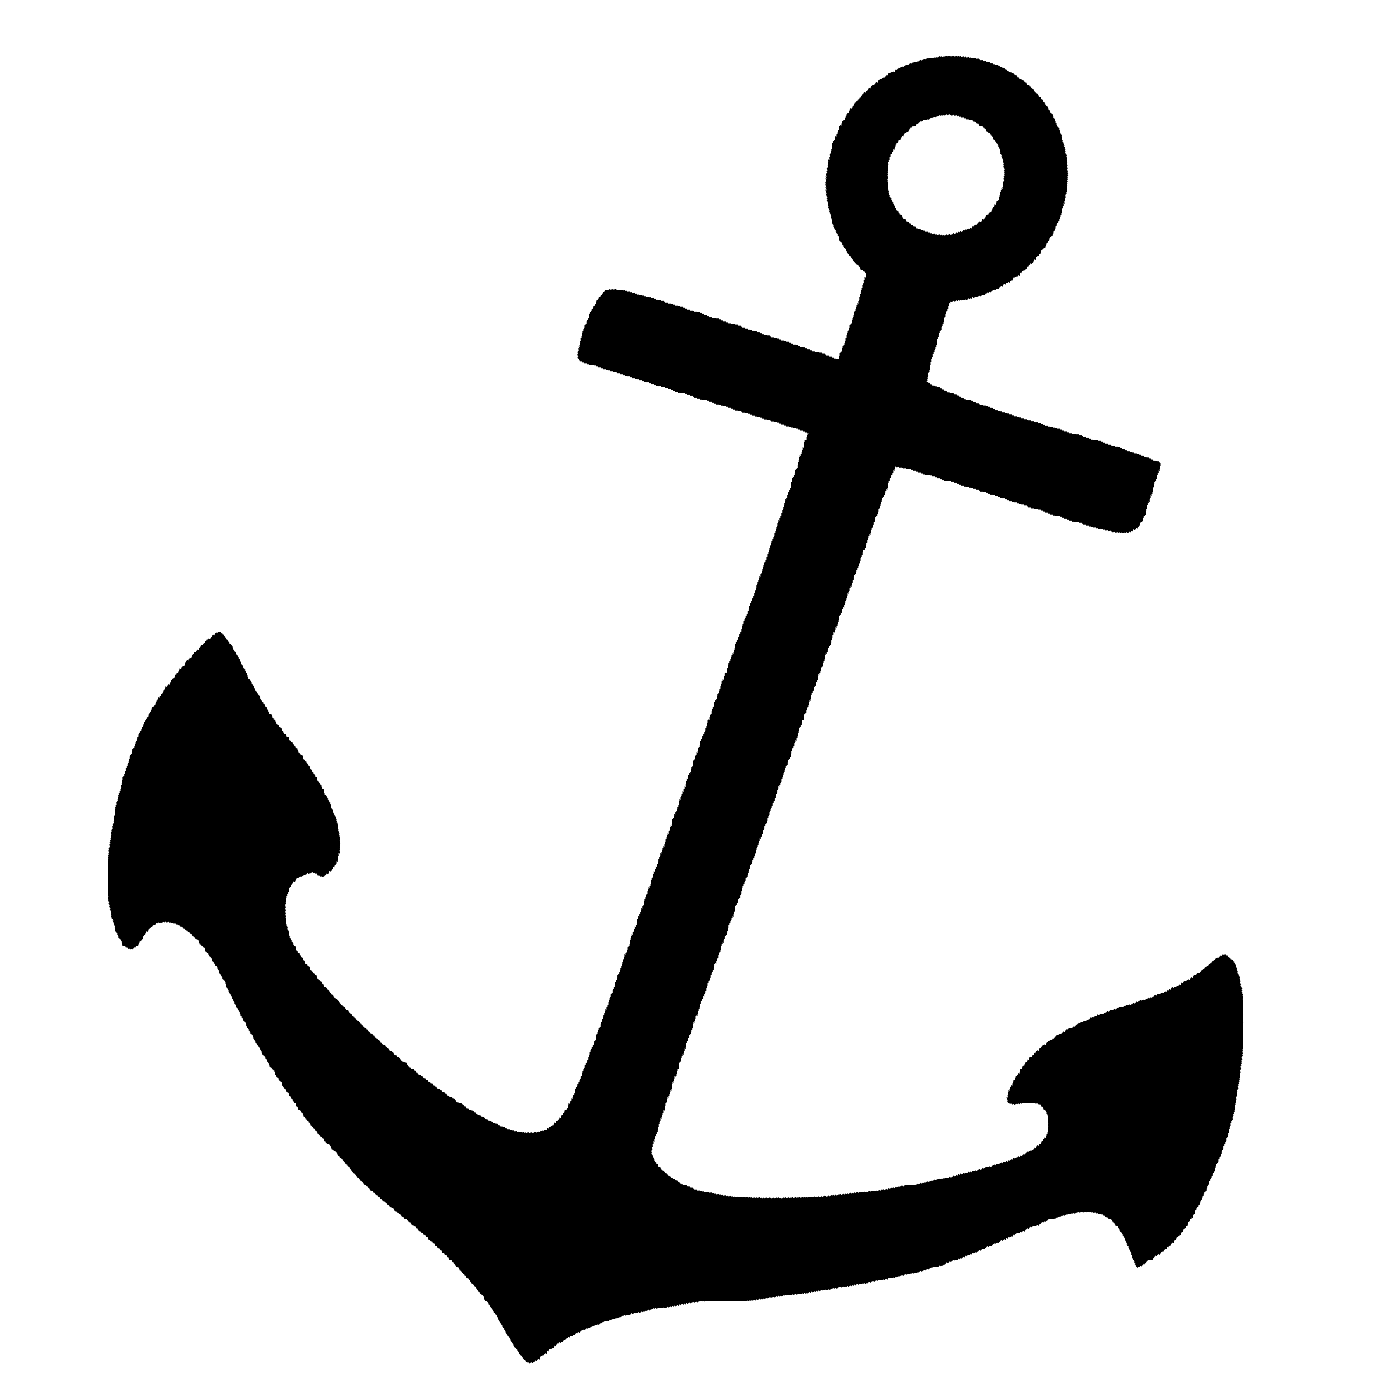 Left Anchor